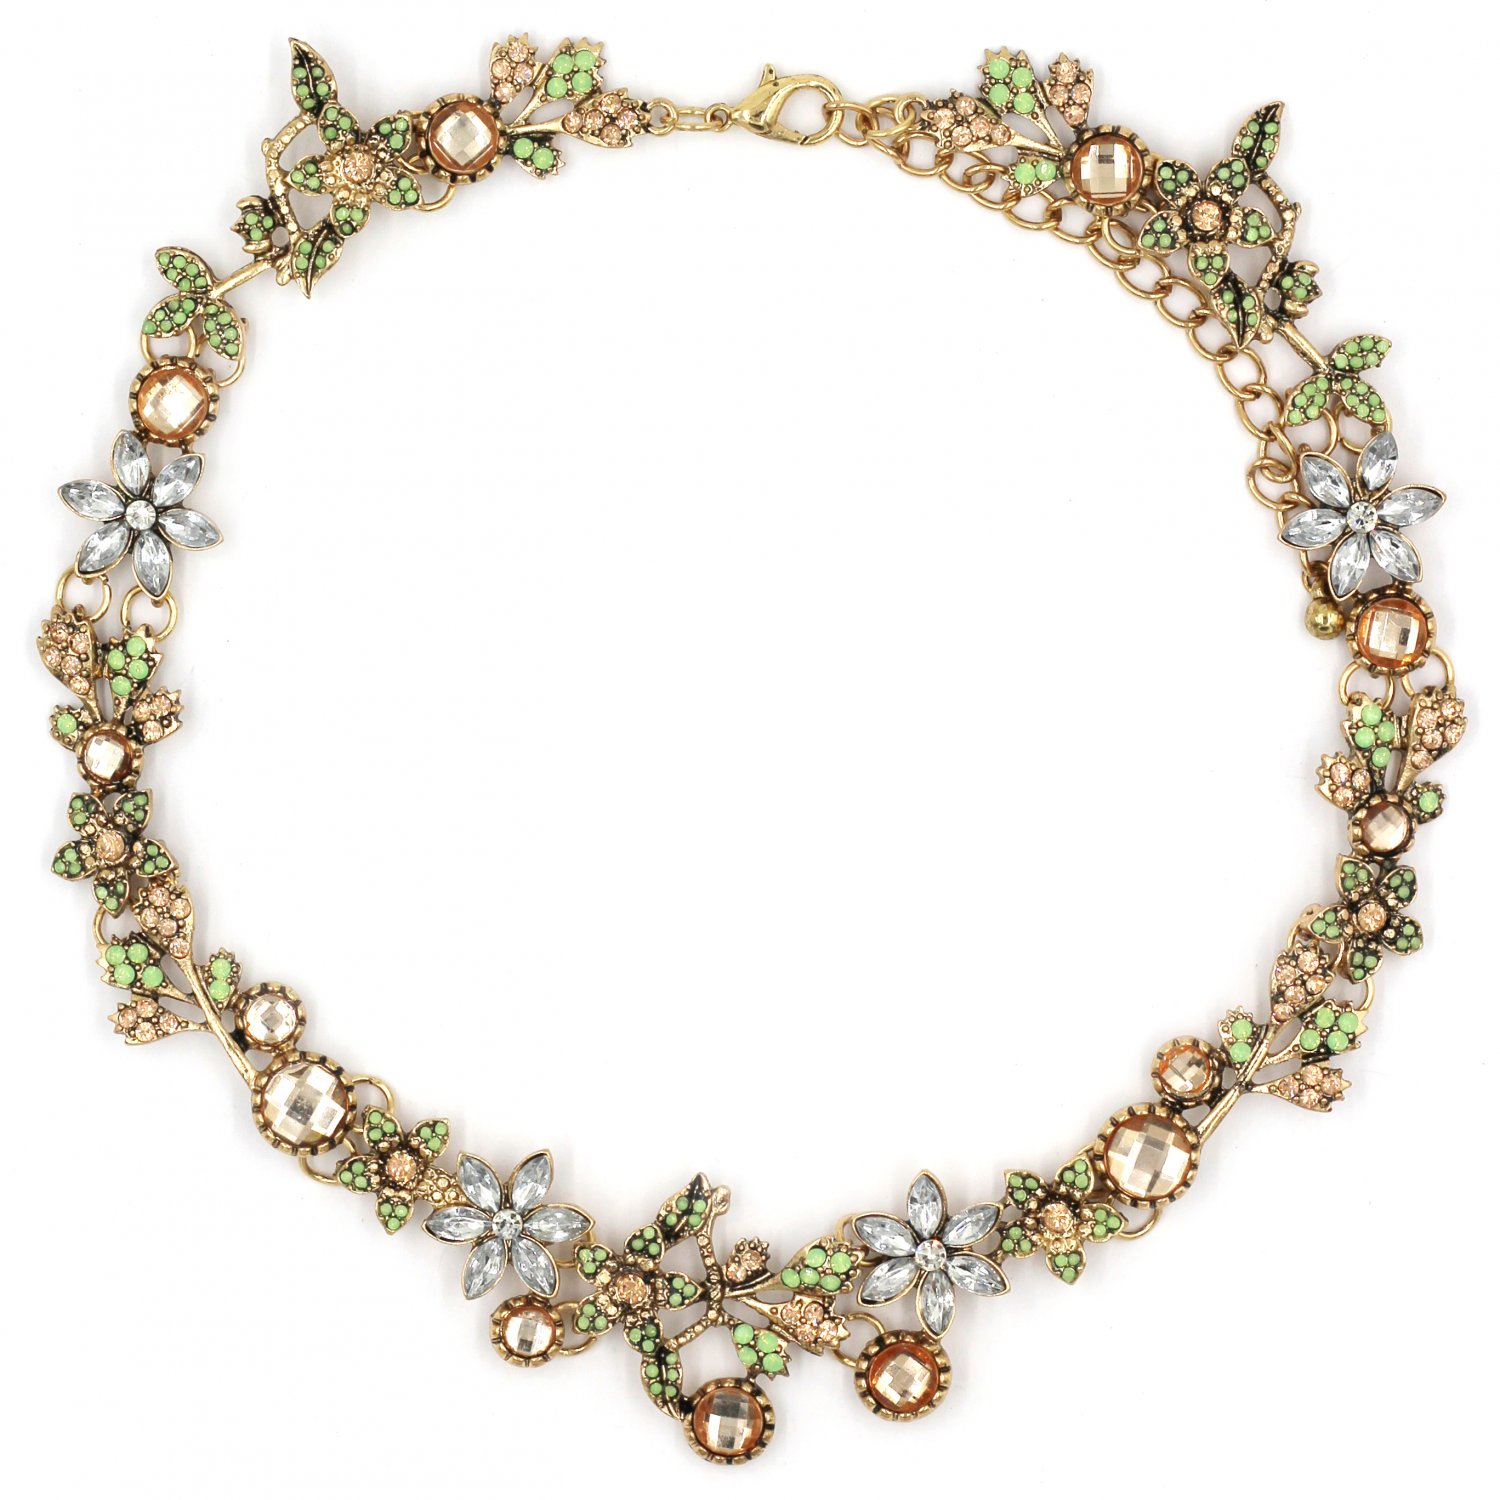 Pretty wreath crystal gold necklace